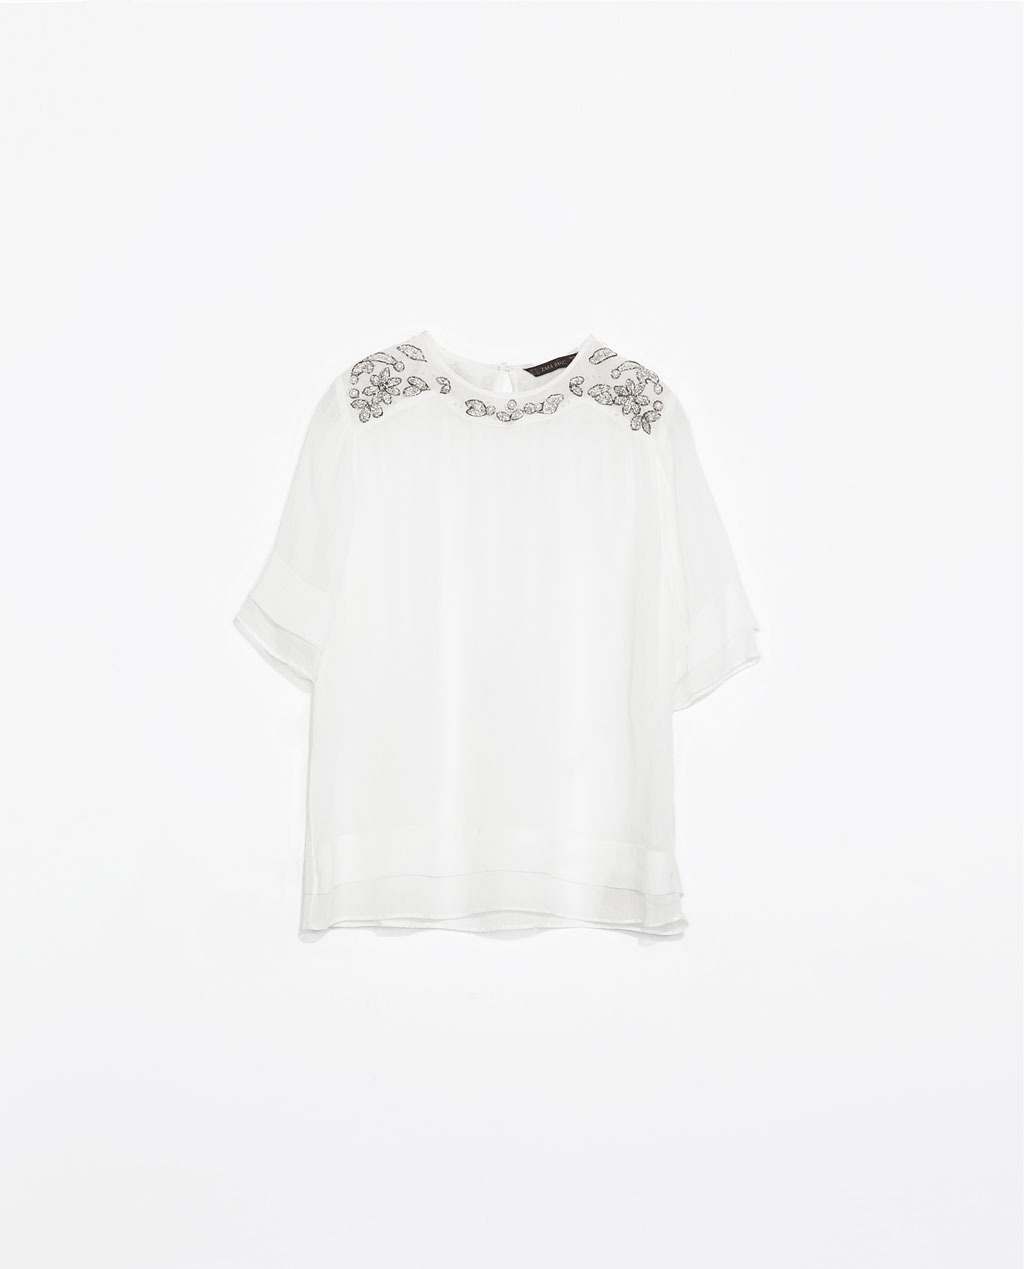 Top - neckline: round neck; pattern: plain; style: t-shirt; predominant colour: white; occasions: casual, evening, occasion, creative work; length: standard; fibres: viscose/rayon - 100%; fit: loose; shoulder detail: added shoulder detail; sleeve length: short sleeve; sleeve style: standard; texture group: sheer fabrics/chiffon/organza etc.; pattern type: fabric; embellishment: crystals/glass; trends: summer sparkle, sheer; season: s/s 2014